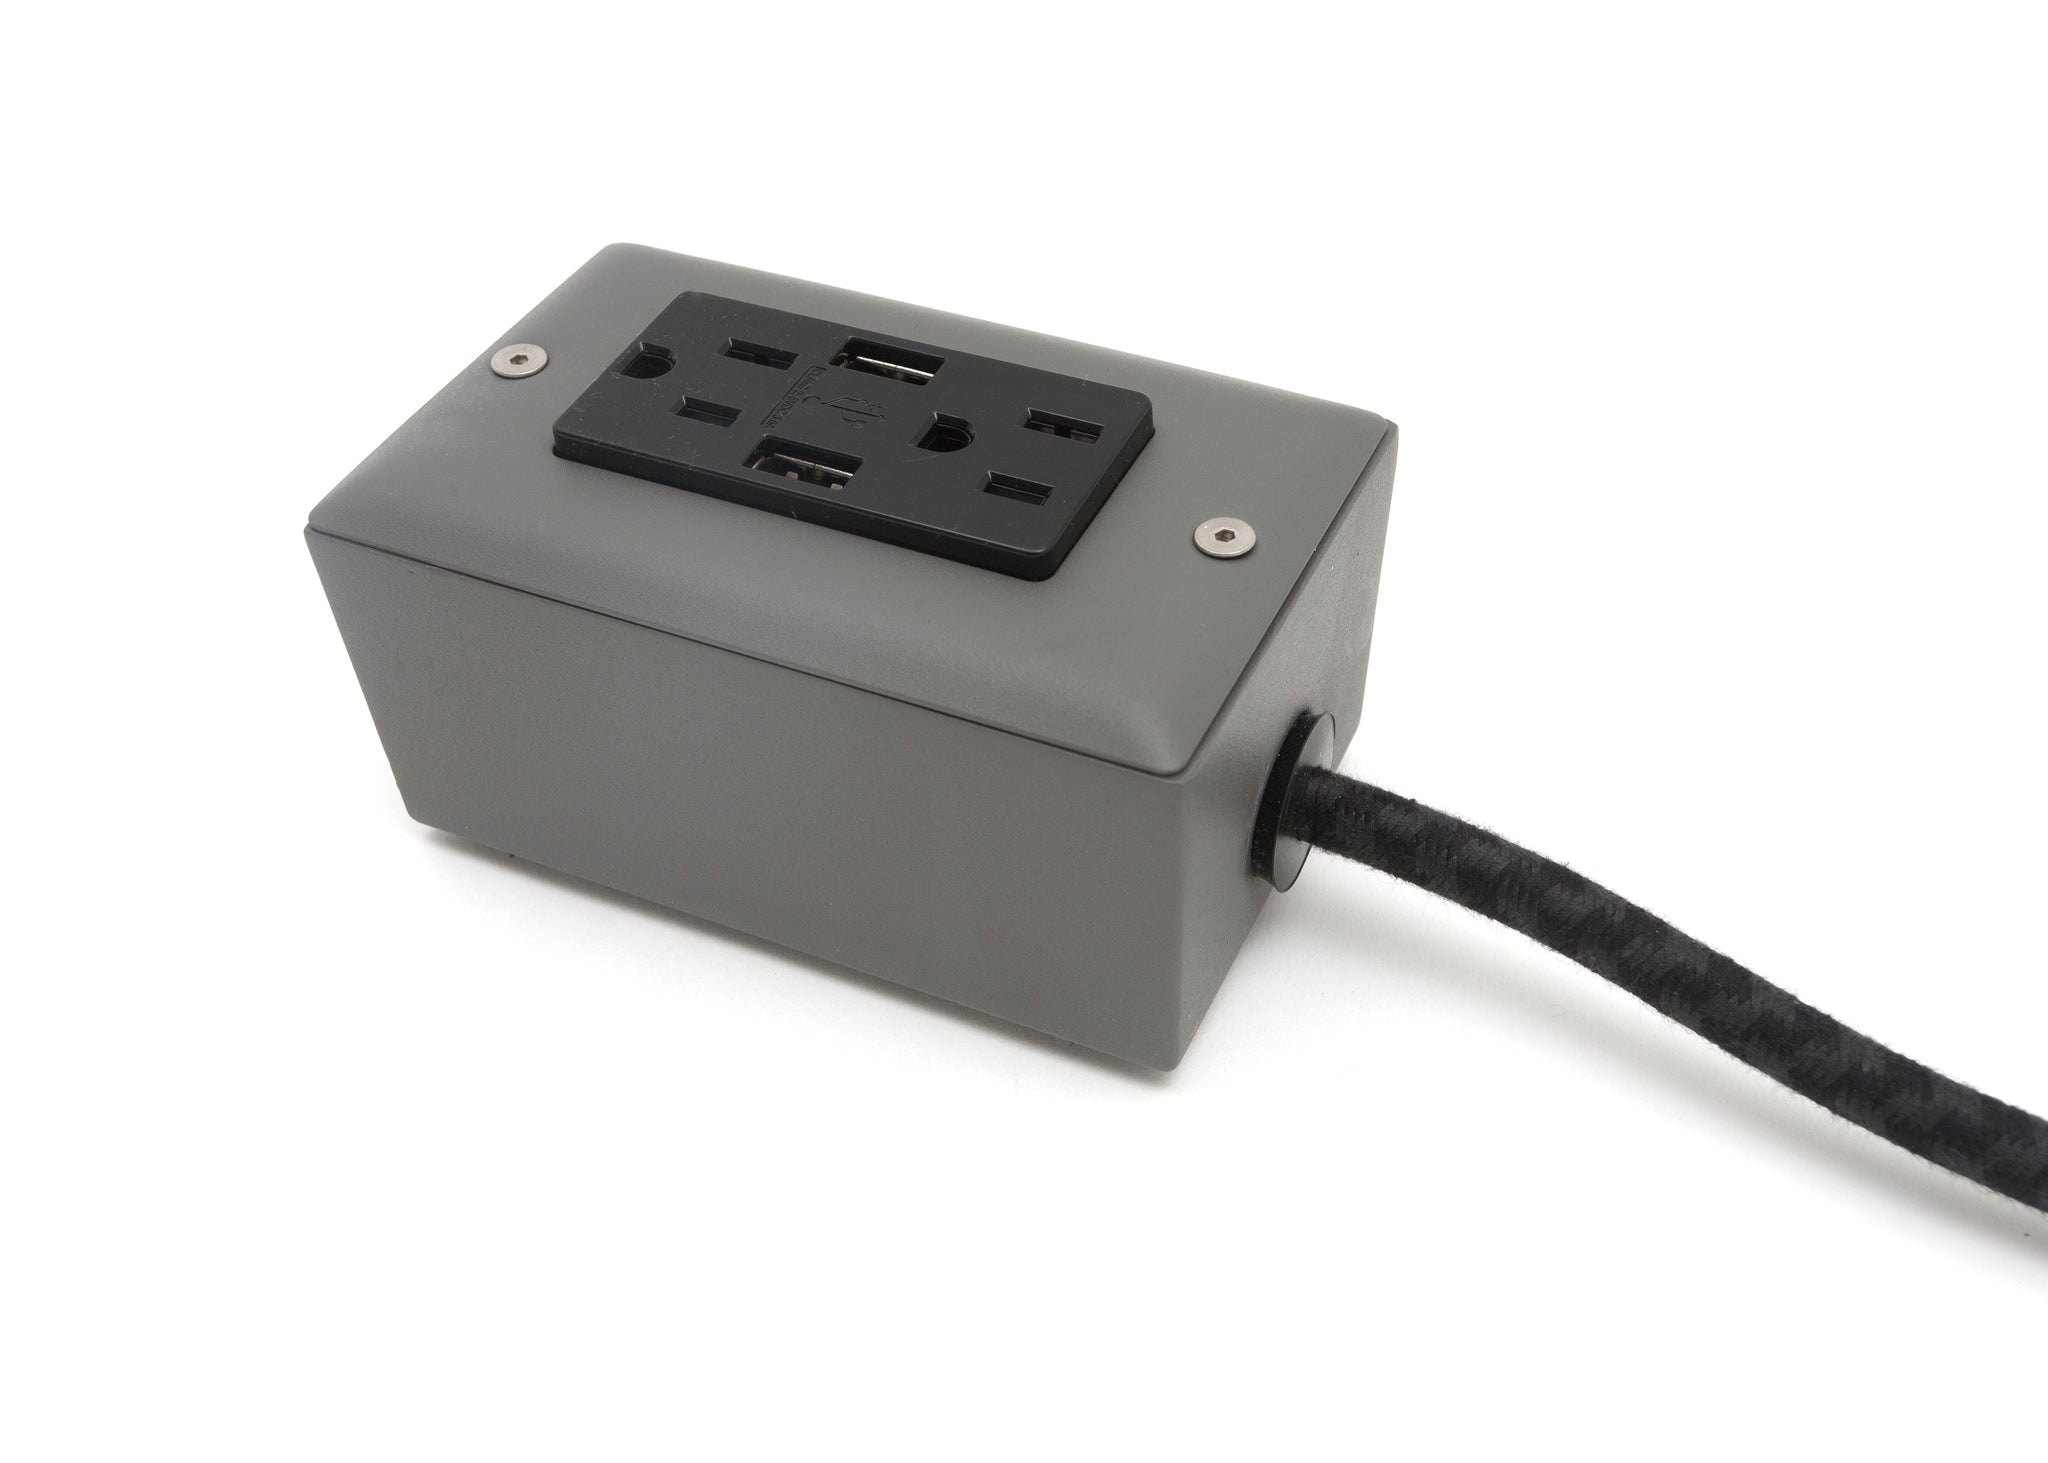 The First Smart Chip Extension Cord - 12' Extō Dual-USB, Dual-Outlet - Humboldt Fog Grey